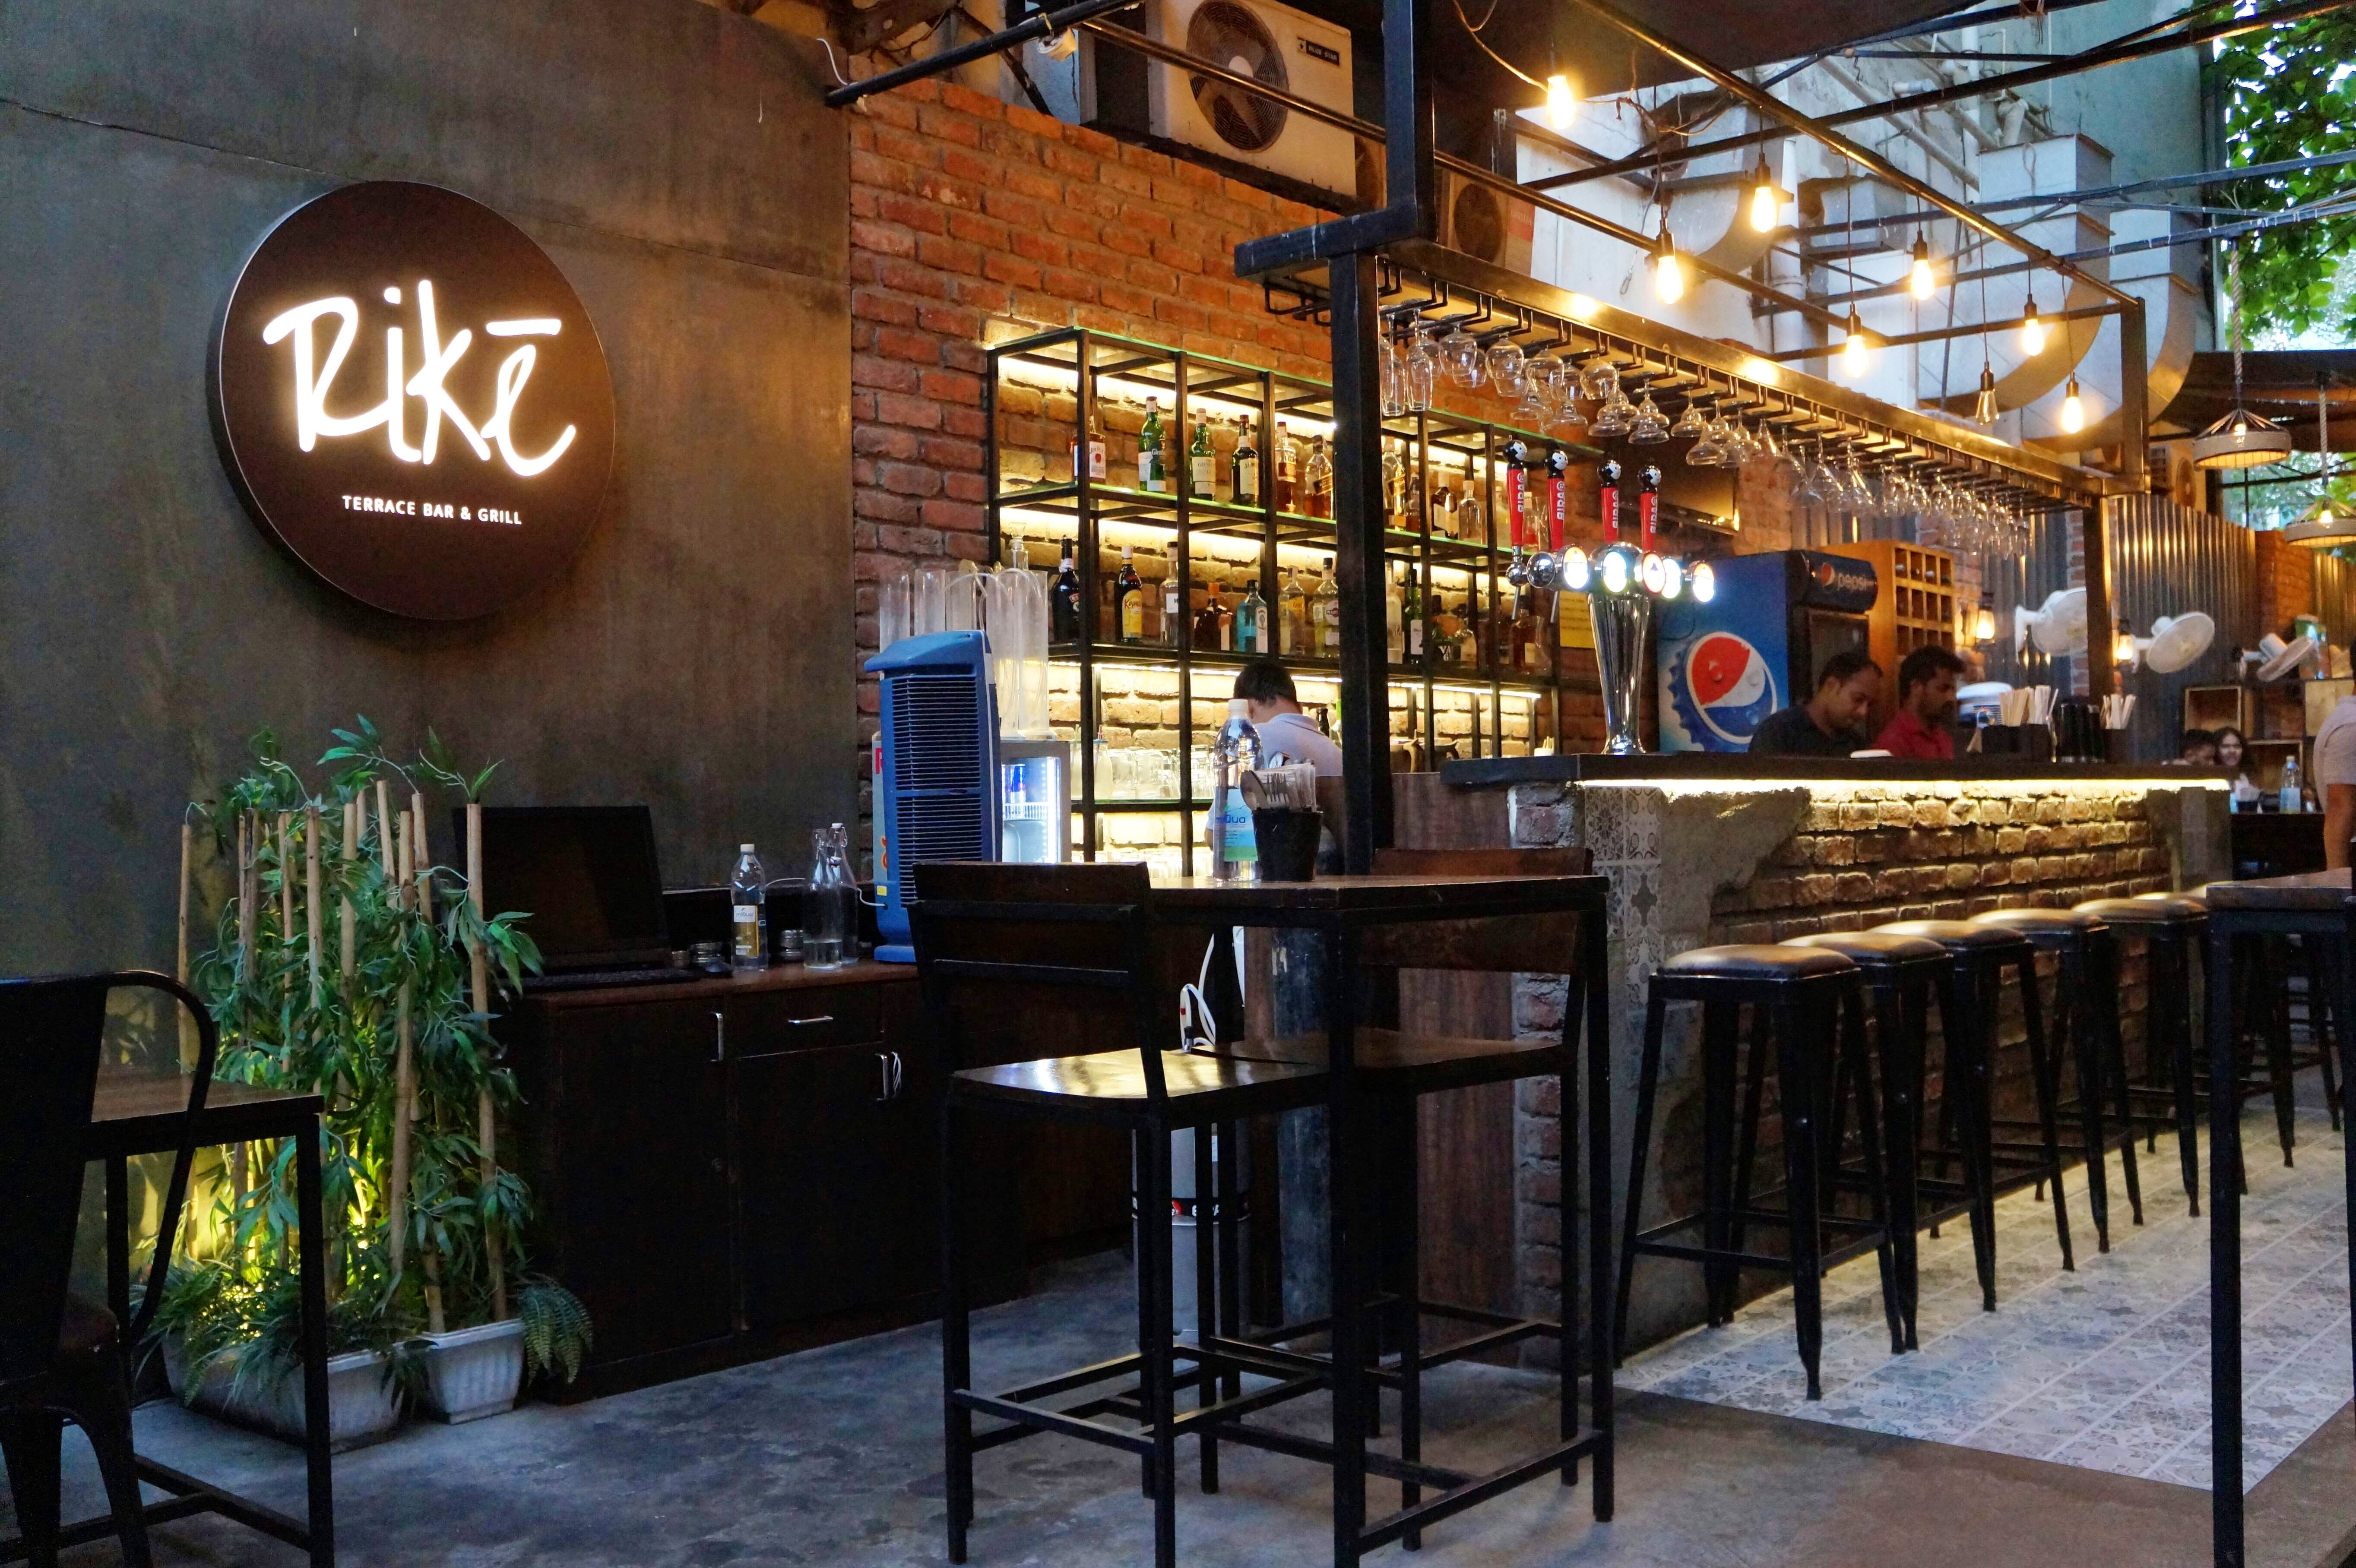 image - Rike - Terrace Bar & Grill